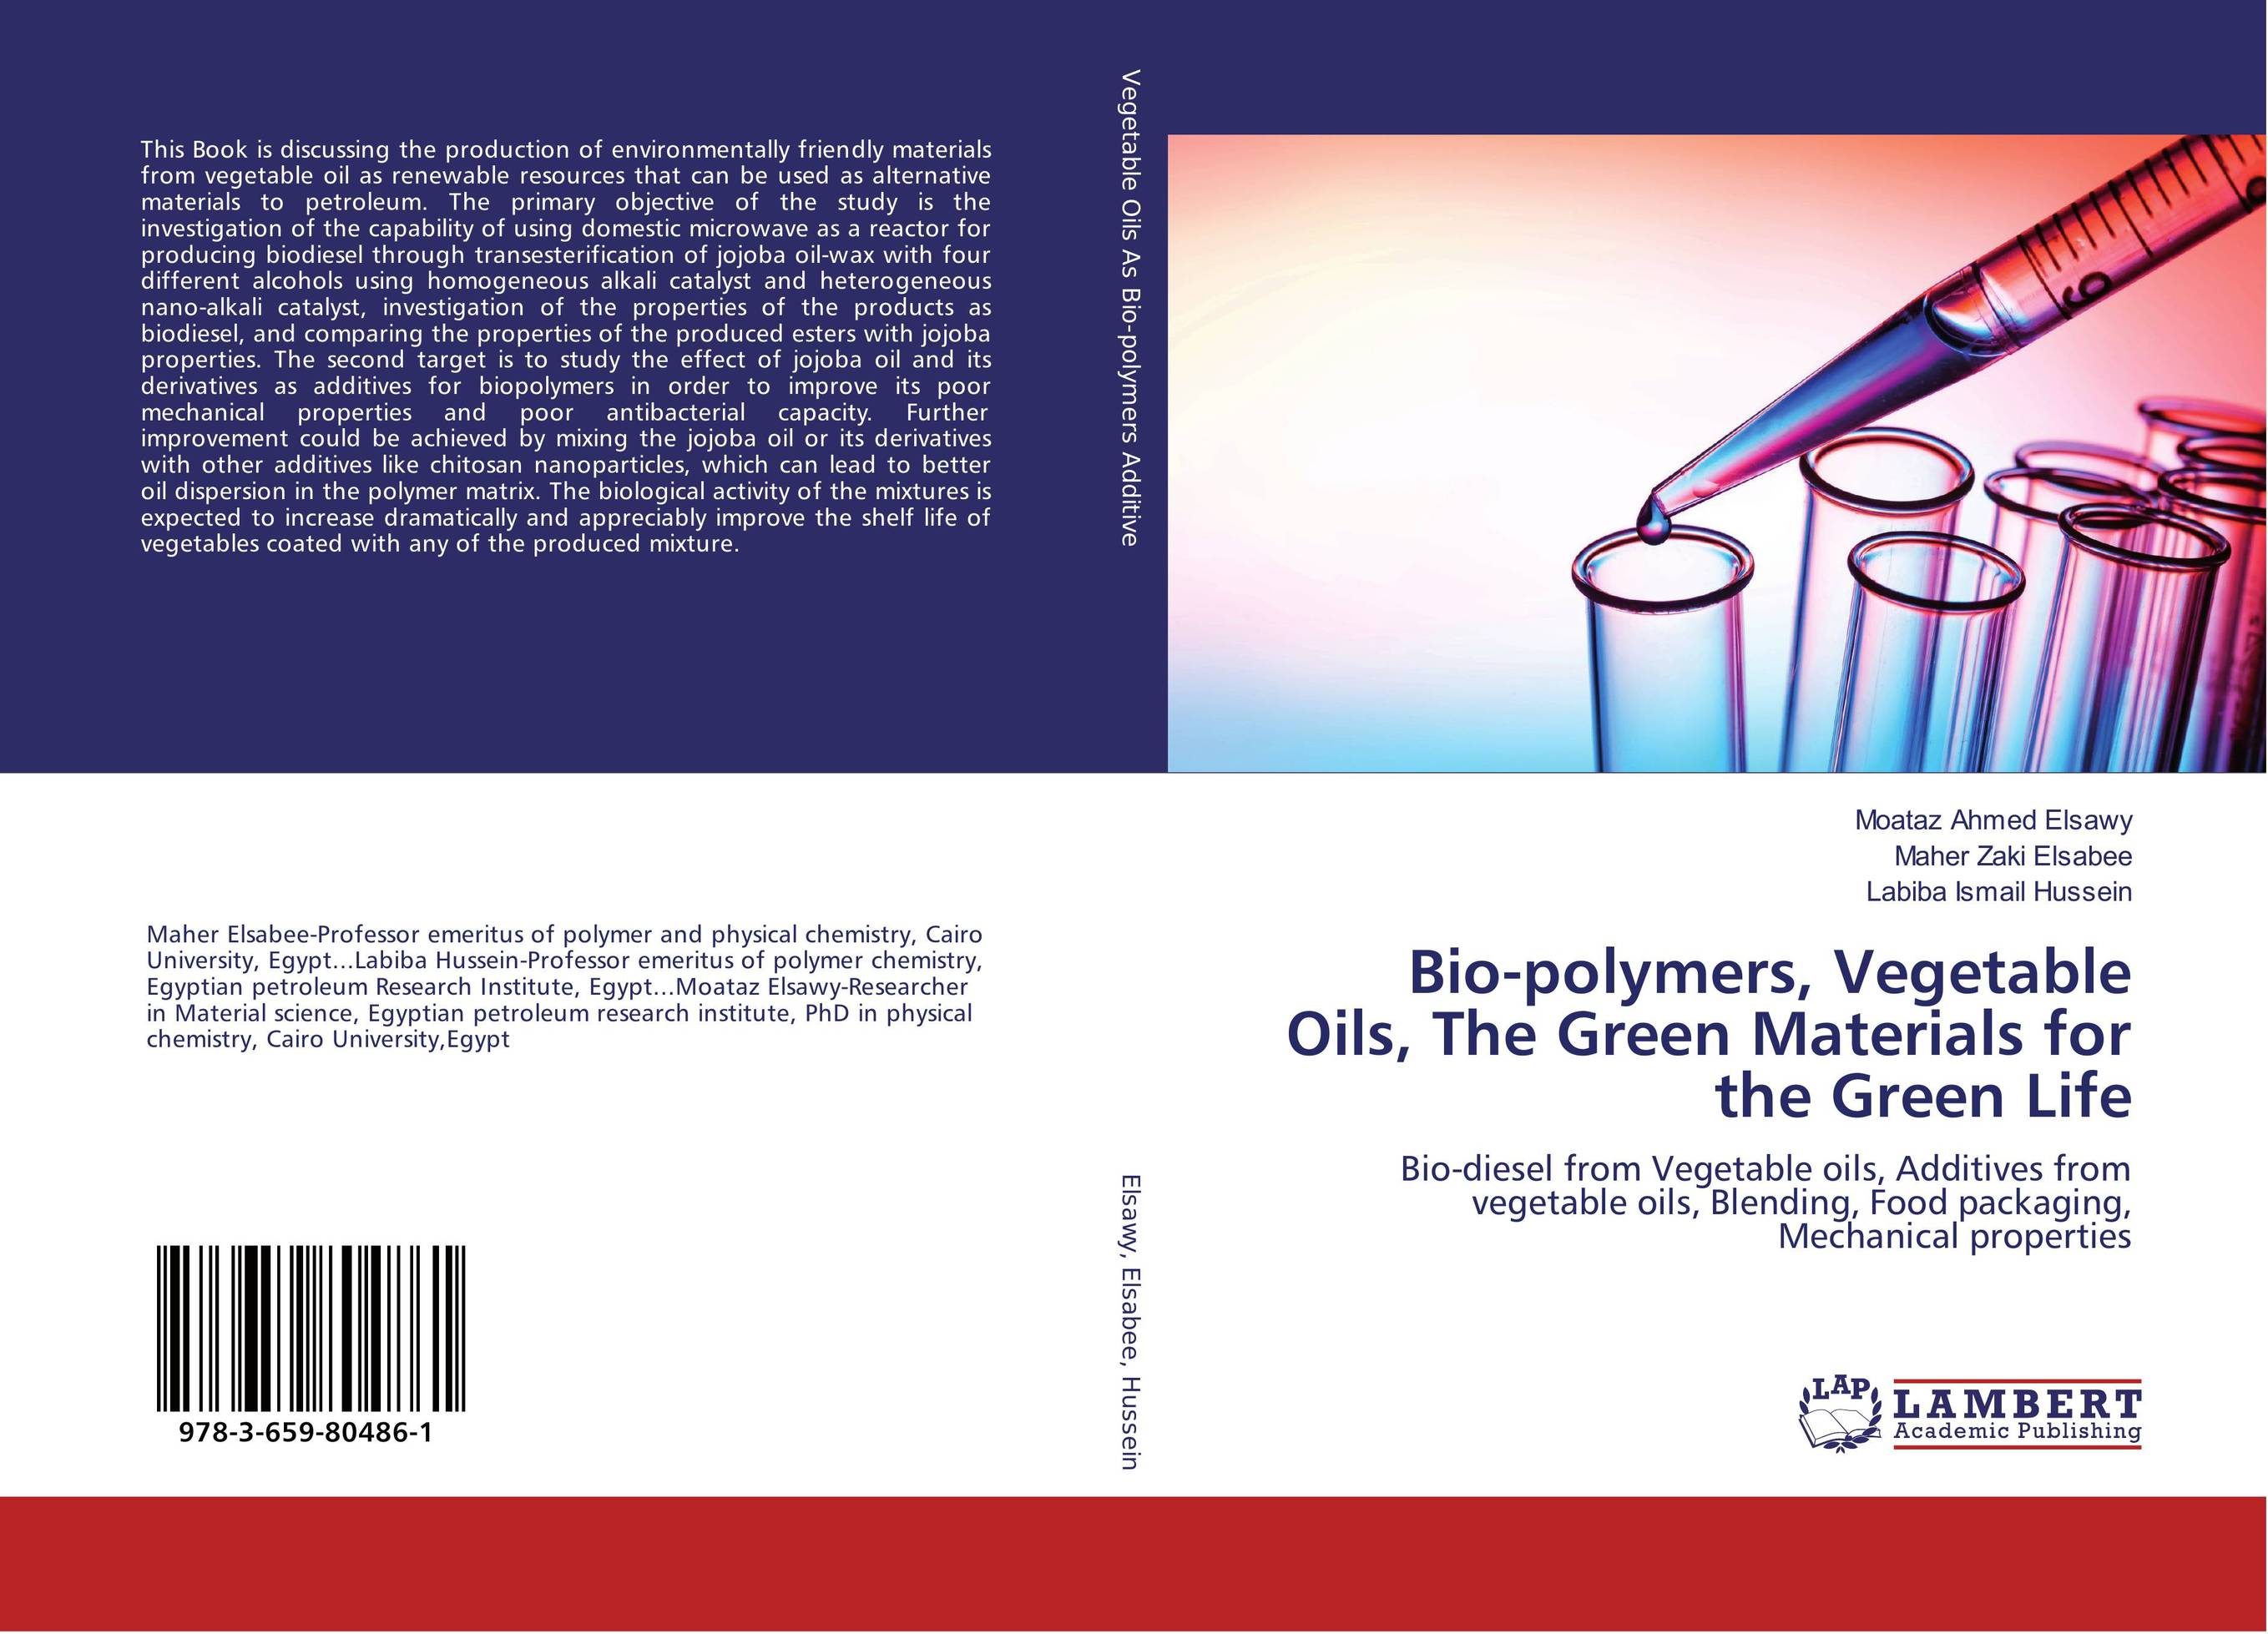 Bio-polymers, Vegetable Oils, The Green Materials for the Green Life oil separator integrates well the different techniques of oil separation in the design of its products